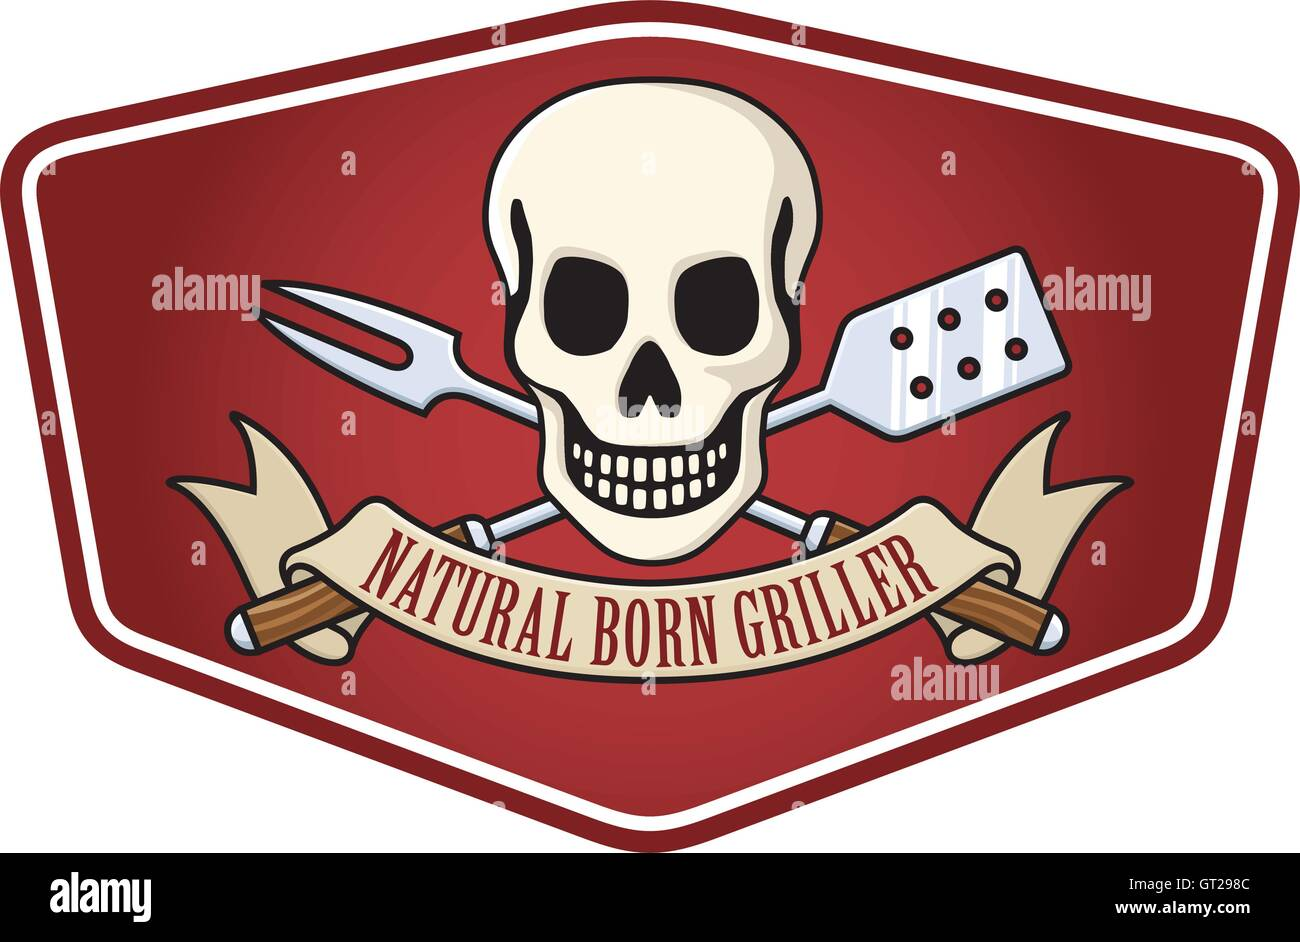 natural born griller barbecue logo with cow skull and crossed